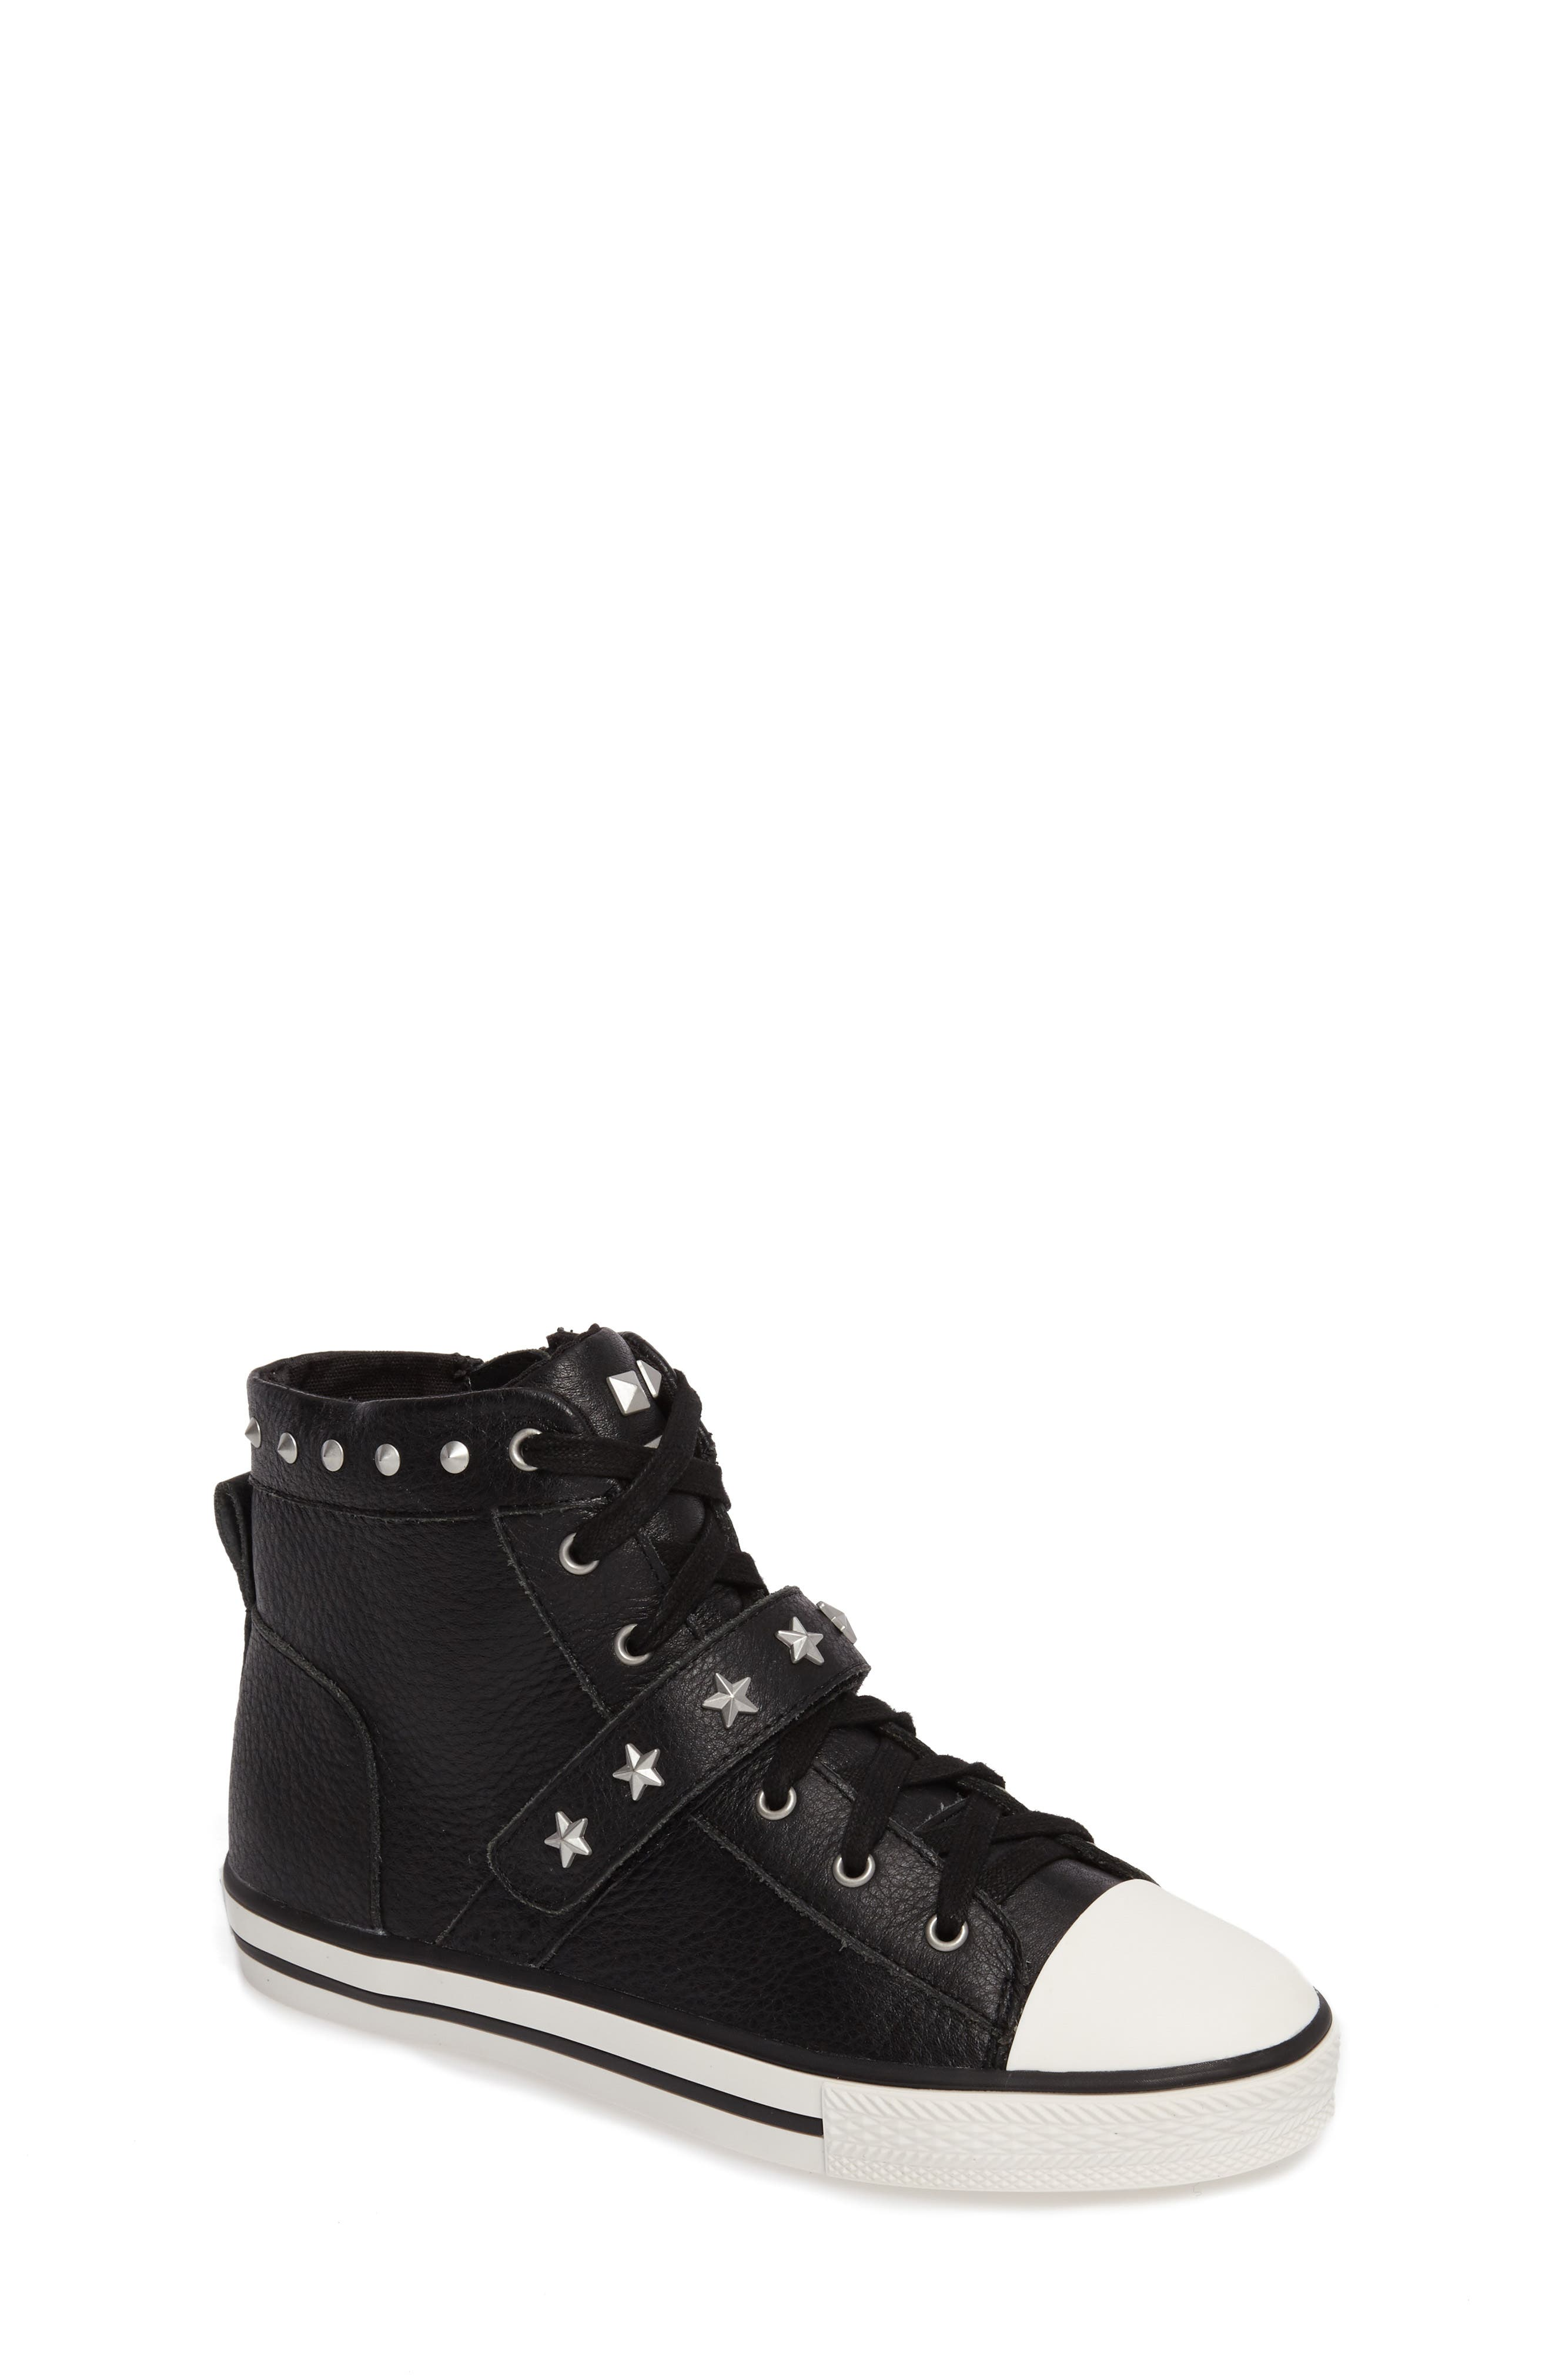 Vava Curve Studded High Top Sneaker,                             Main thumbnail 1, color,                             Black Leather